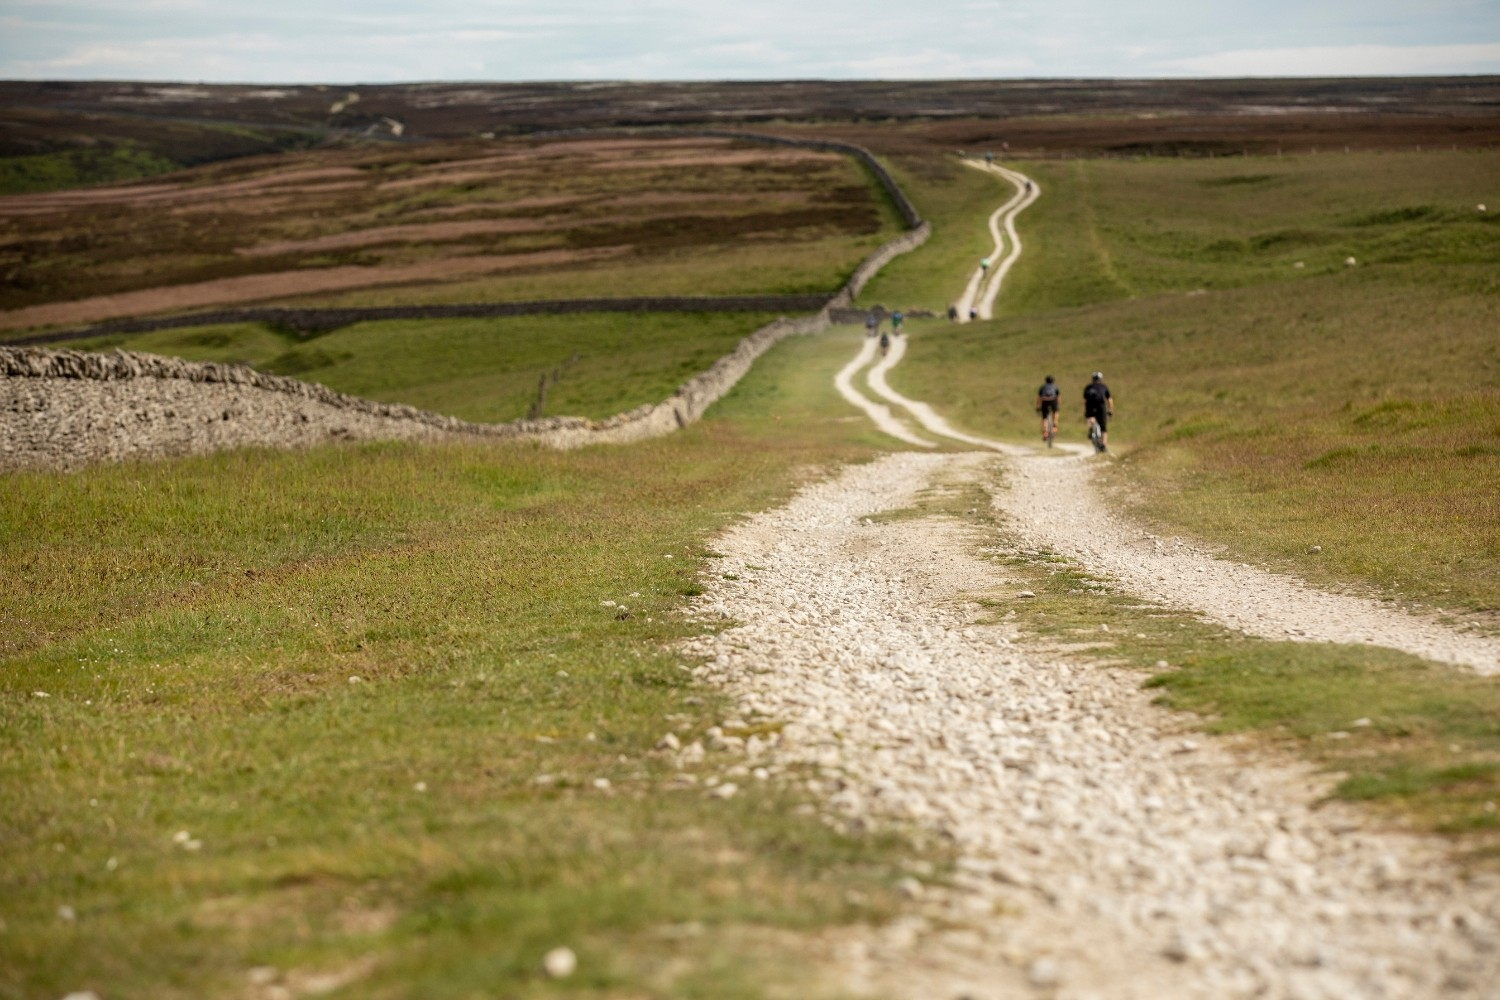 This picture shows two cyclists riding along a long gravel path in the countryside